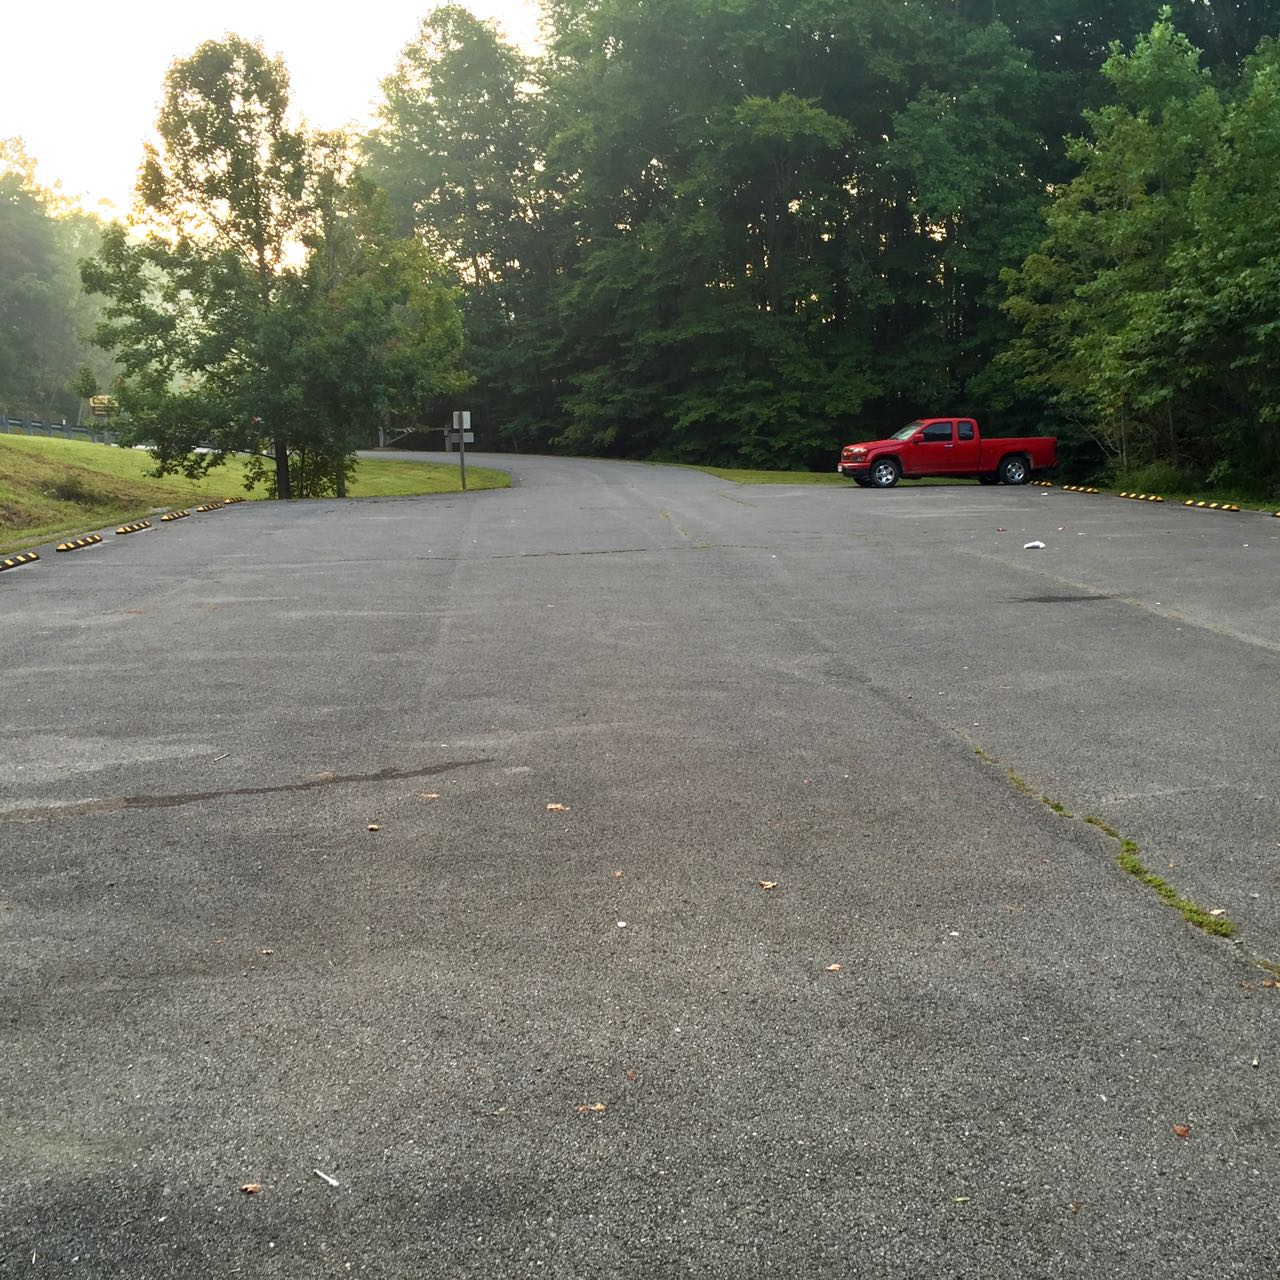 An image of the parking area leading to Windy Bay Fishing Point at Cave Run Lake in Morehead, Kentucky.